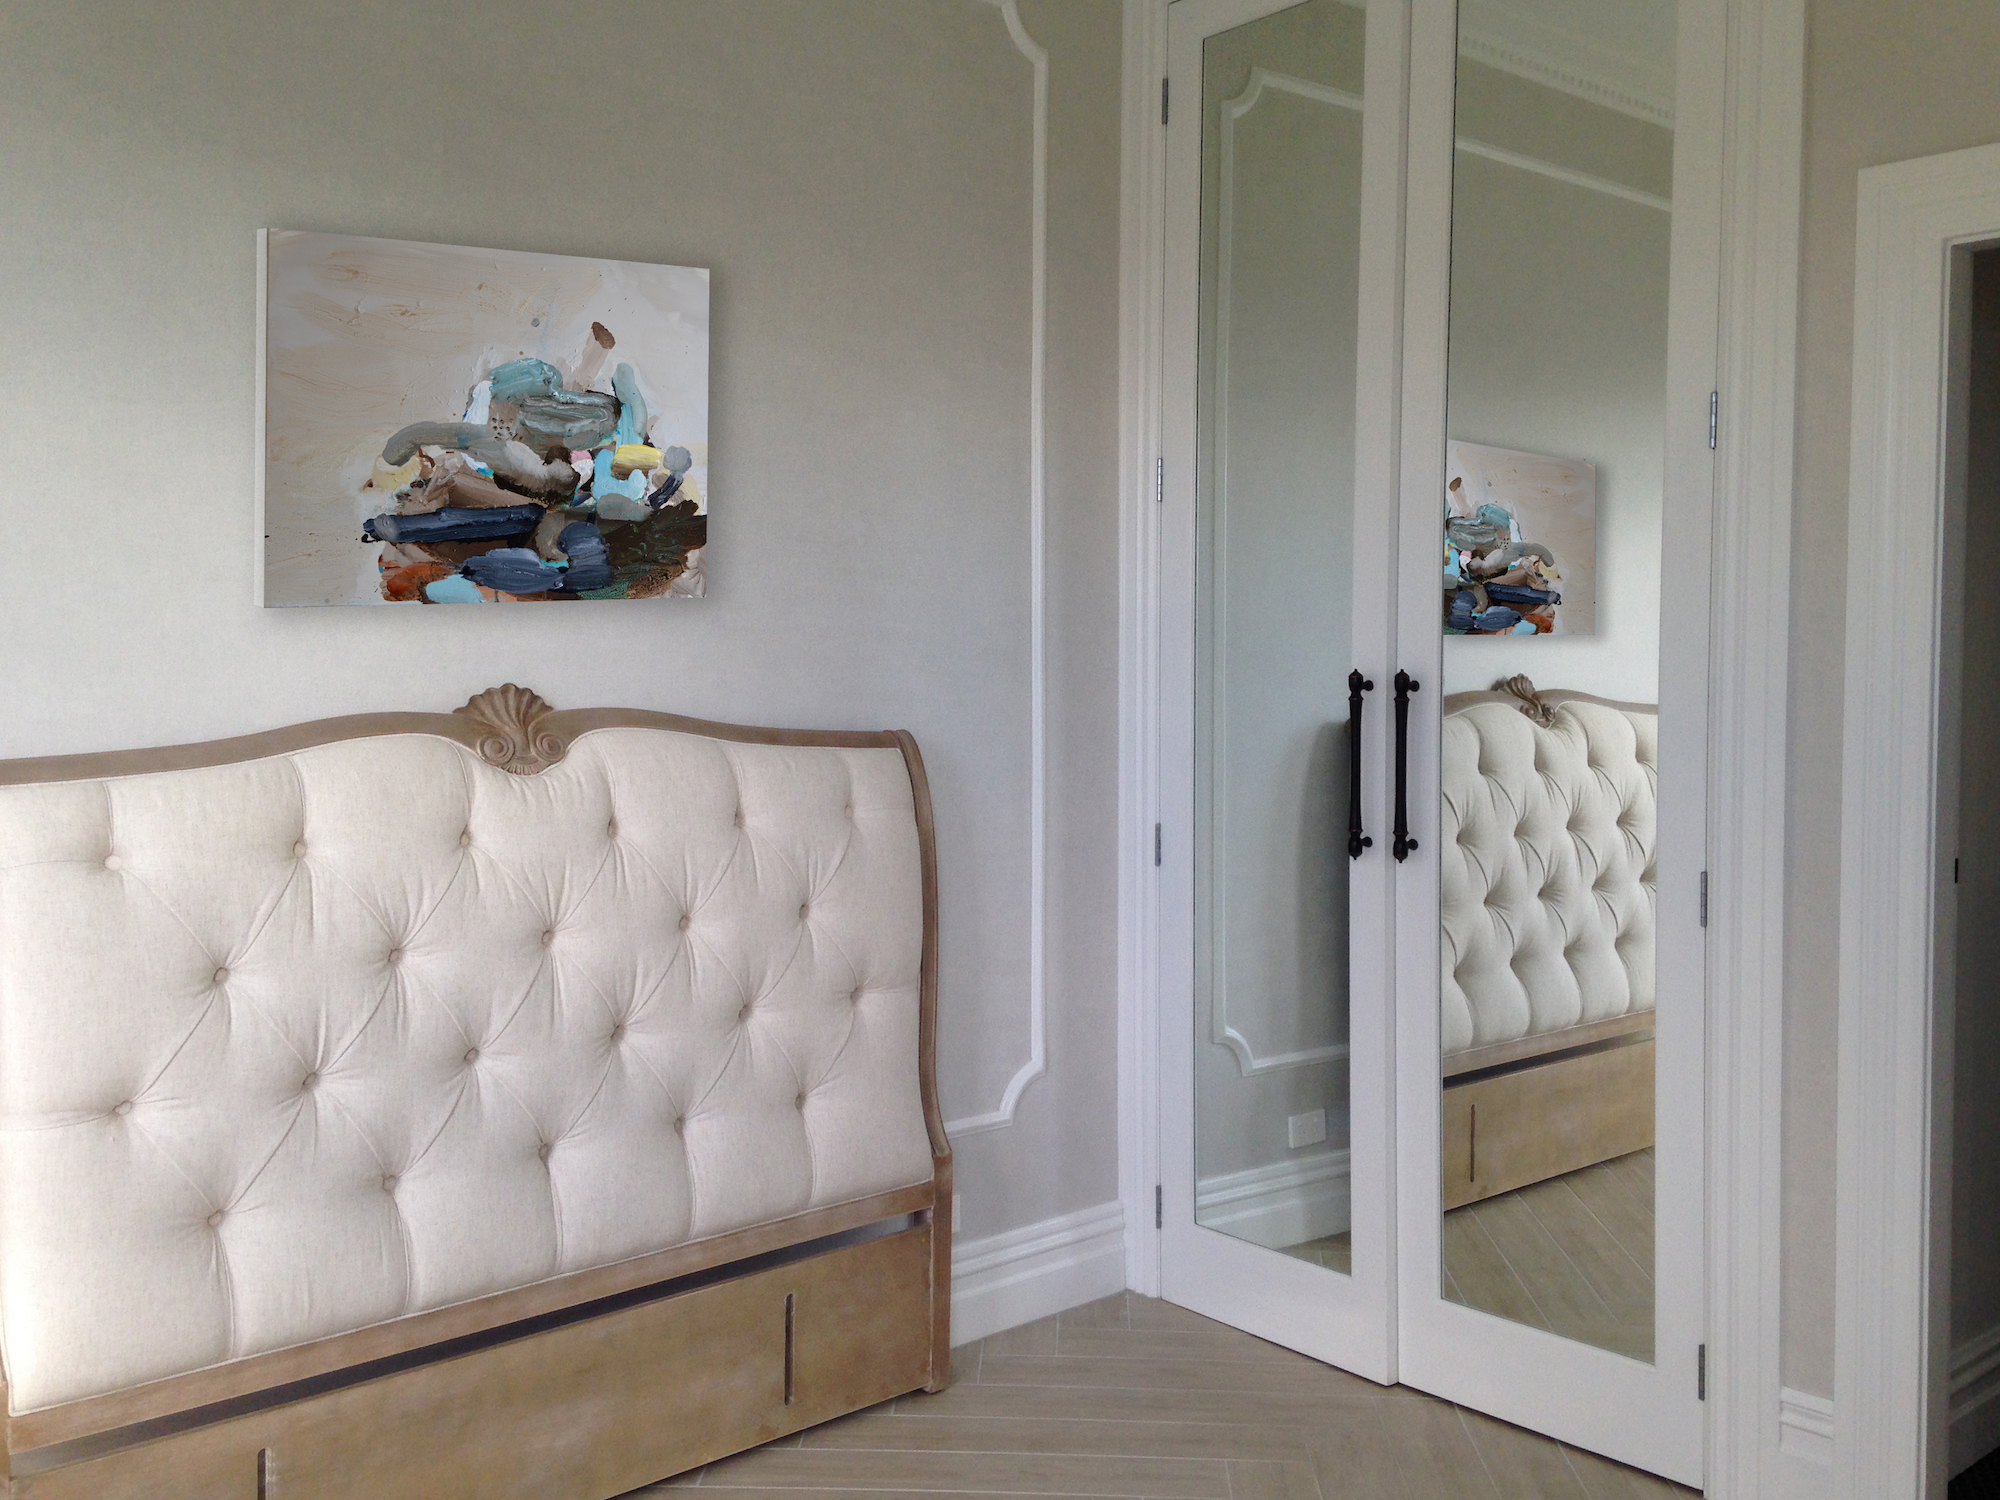 French Country In Remuera. Vintage 'Headboards' sourced or custom designed for unique spaces.